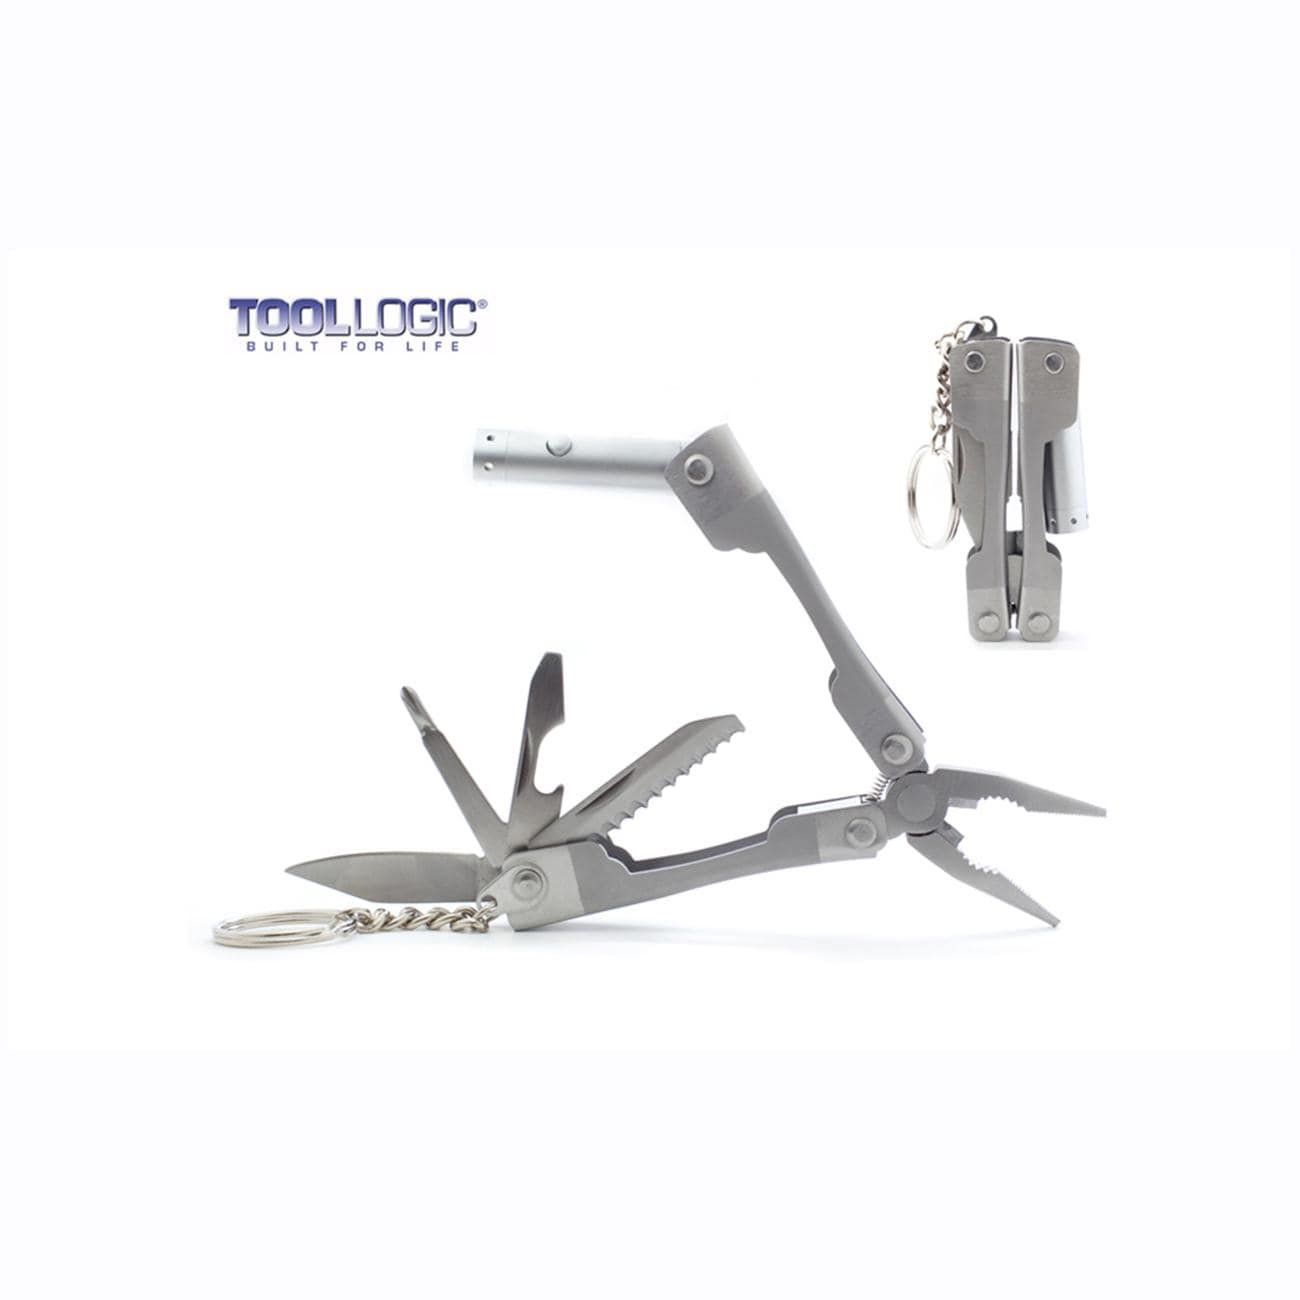 Toologic All-in-one Multi-tool Pocket Knife - Thumbnail 1